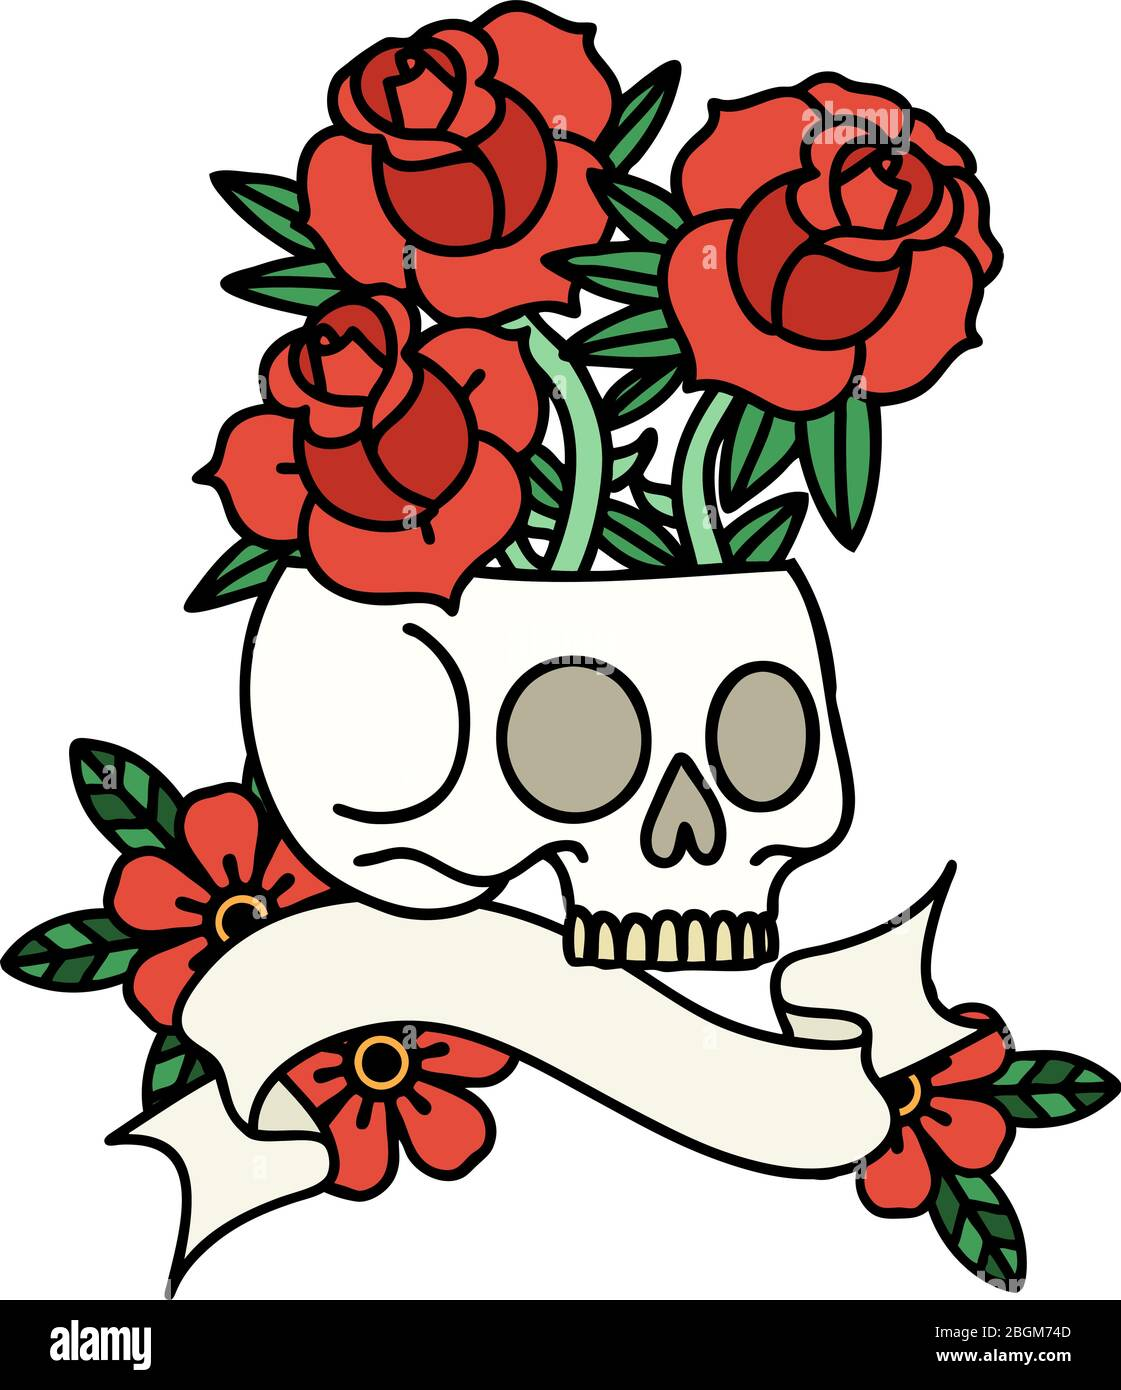 Traditional Tattoo With Banner Of A Skull And Roses Stock Vector Image Art Alamy